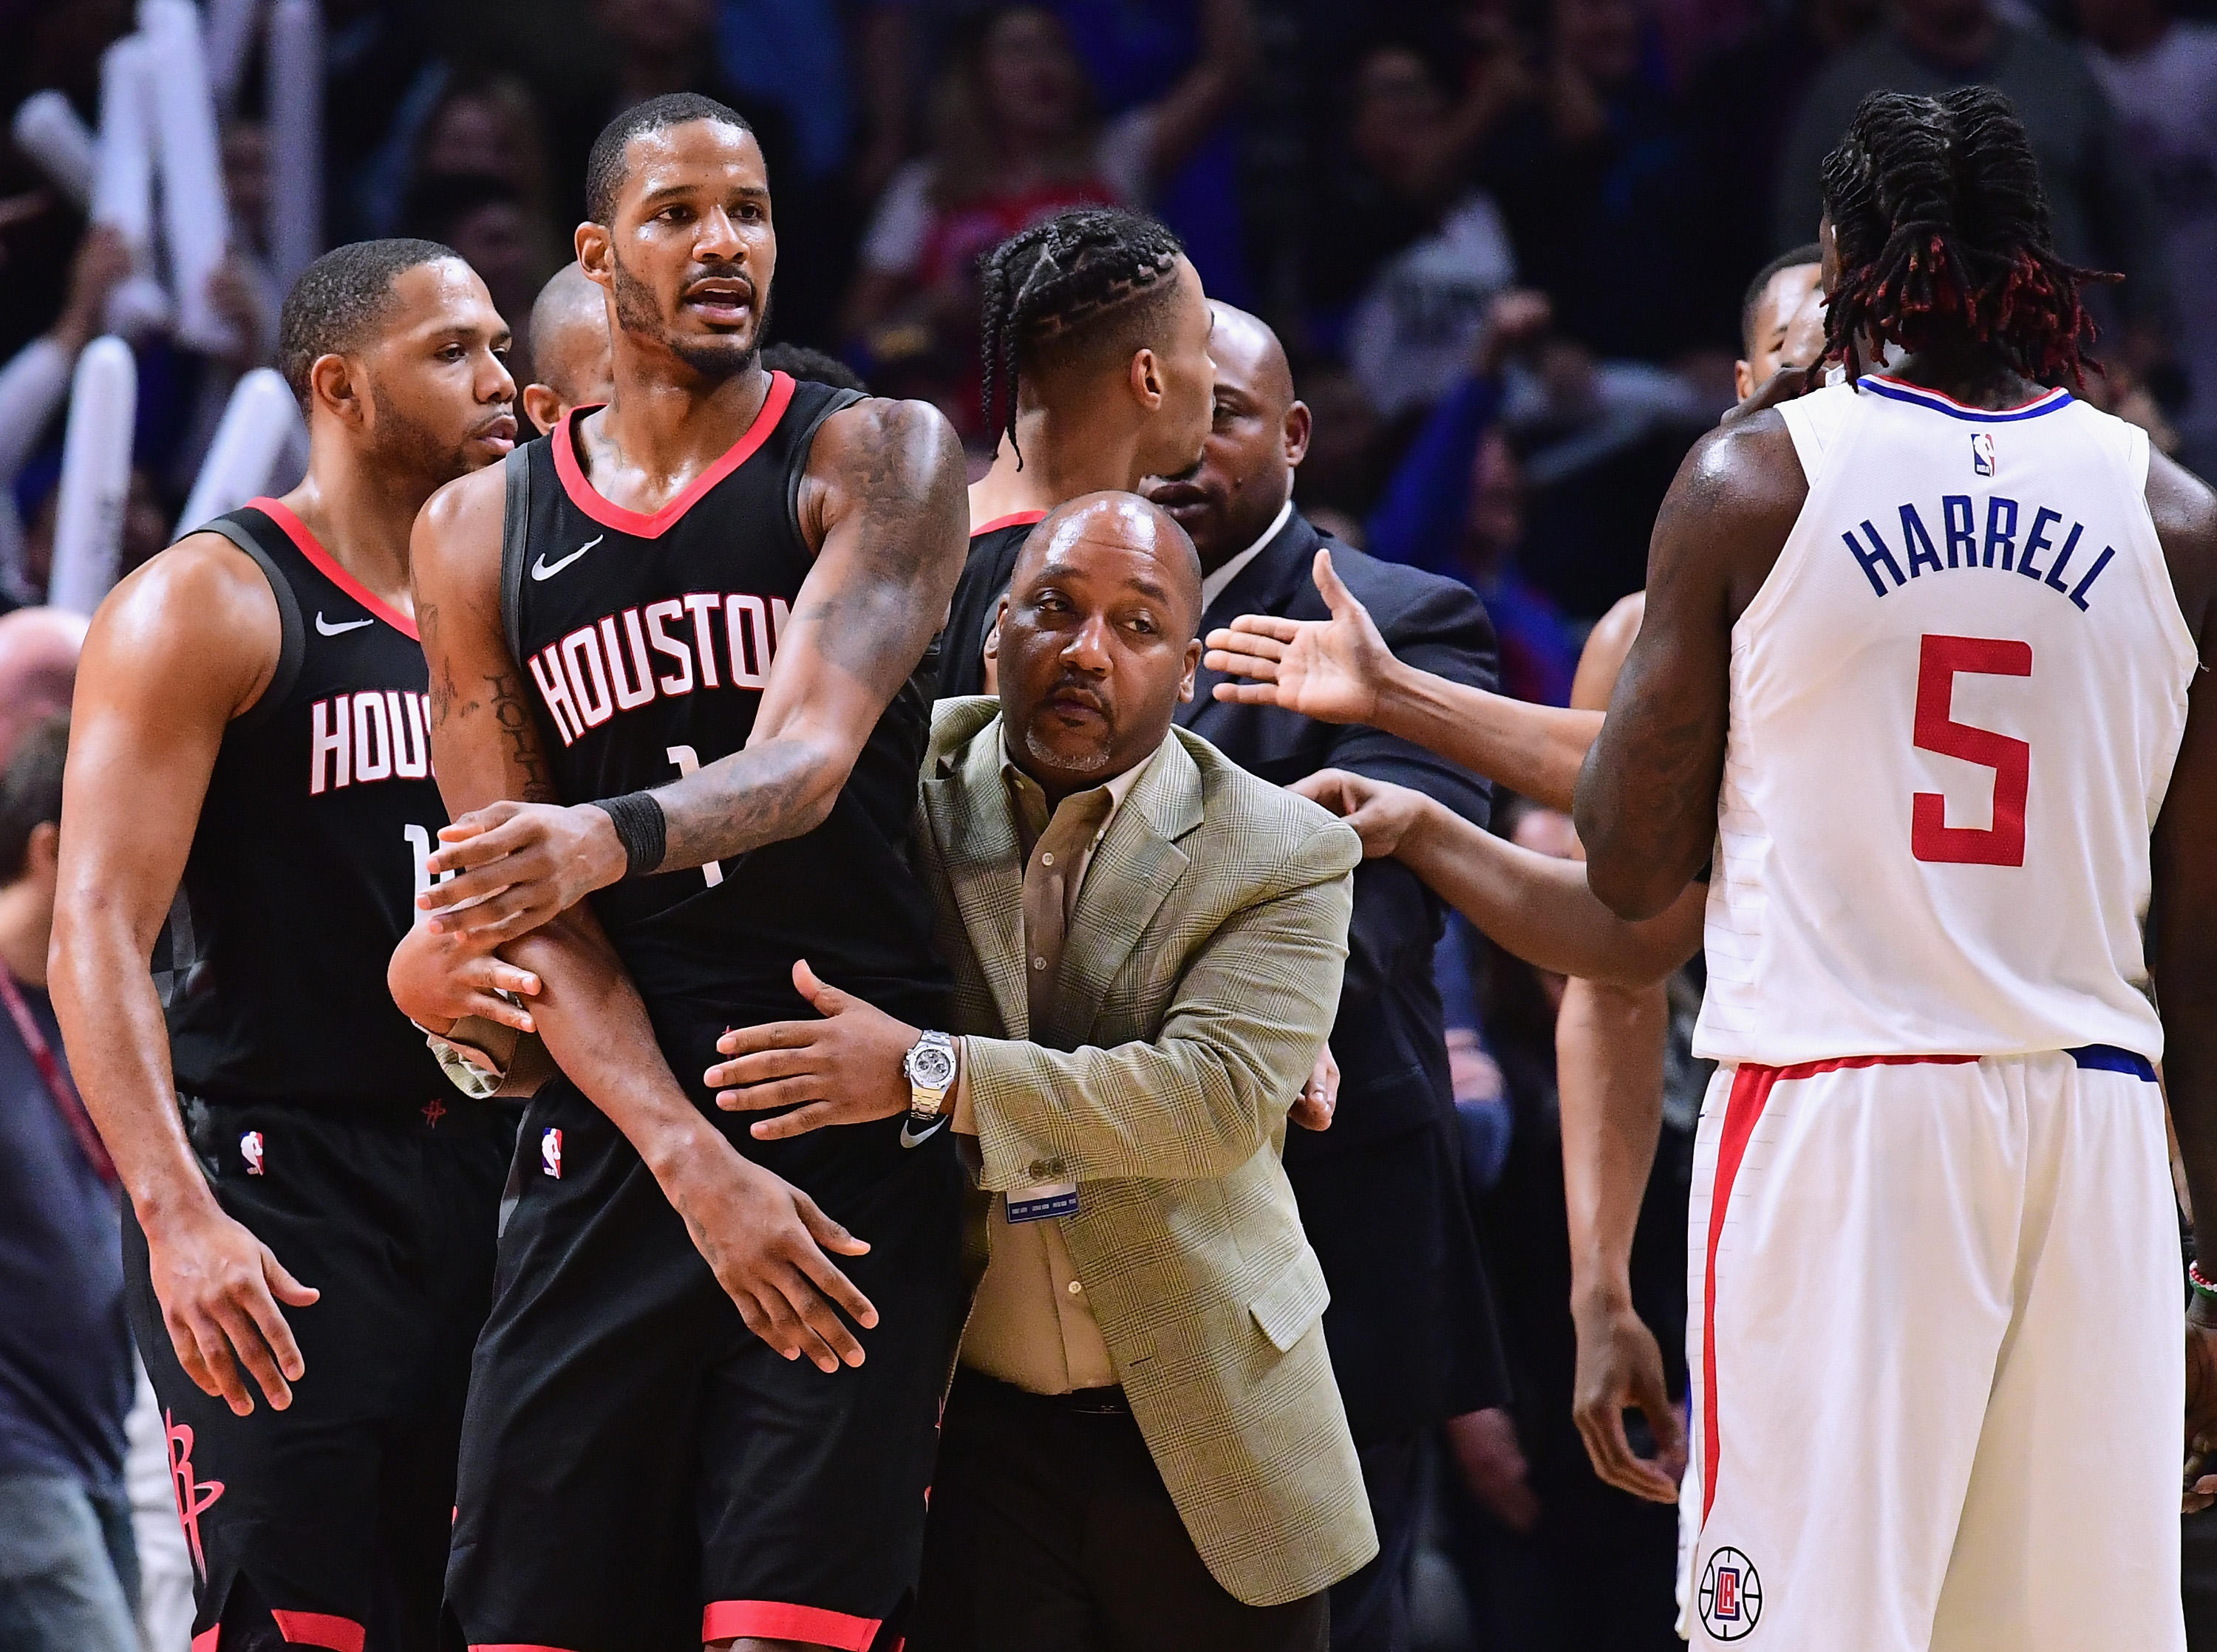 b858f93b0008 NBA opens investigation into Rockets-Clippers locker room incident ...